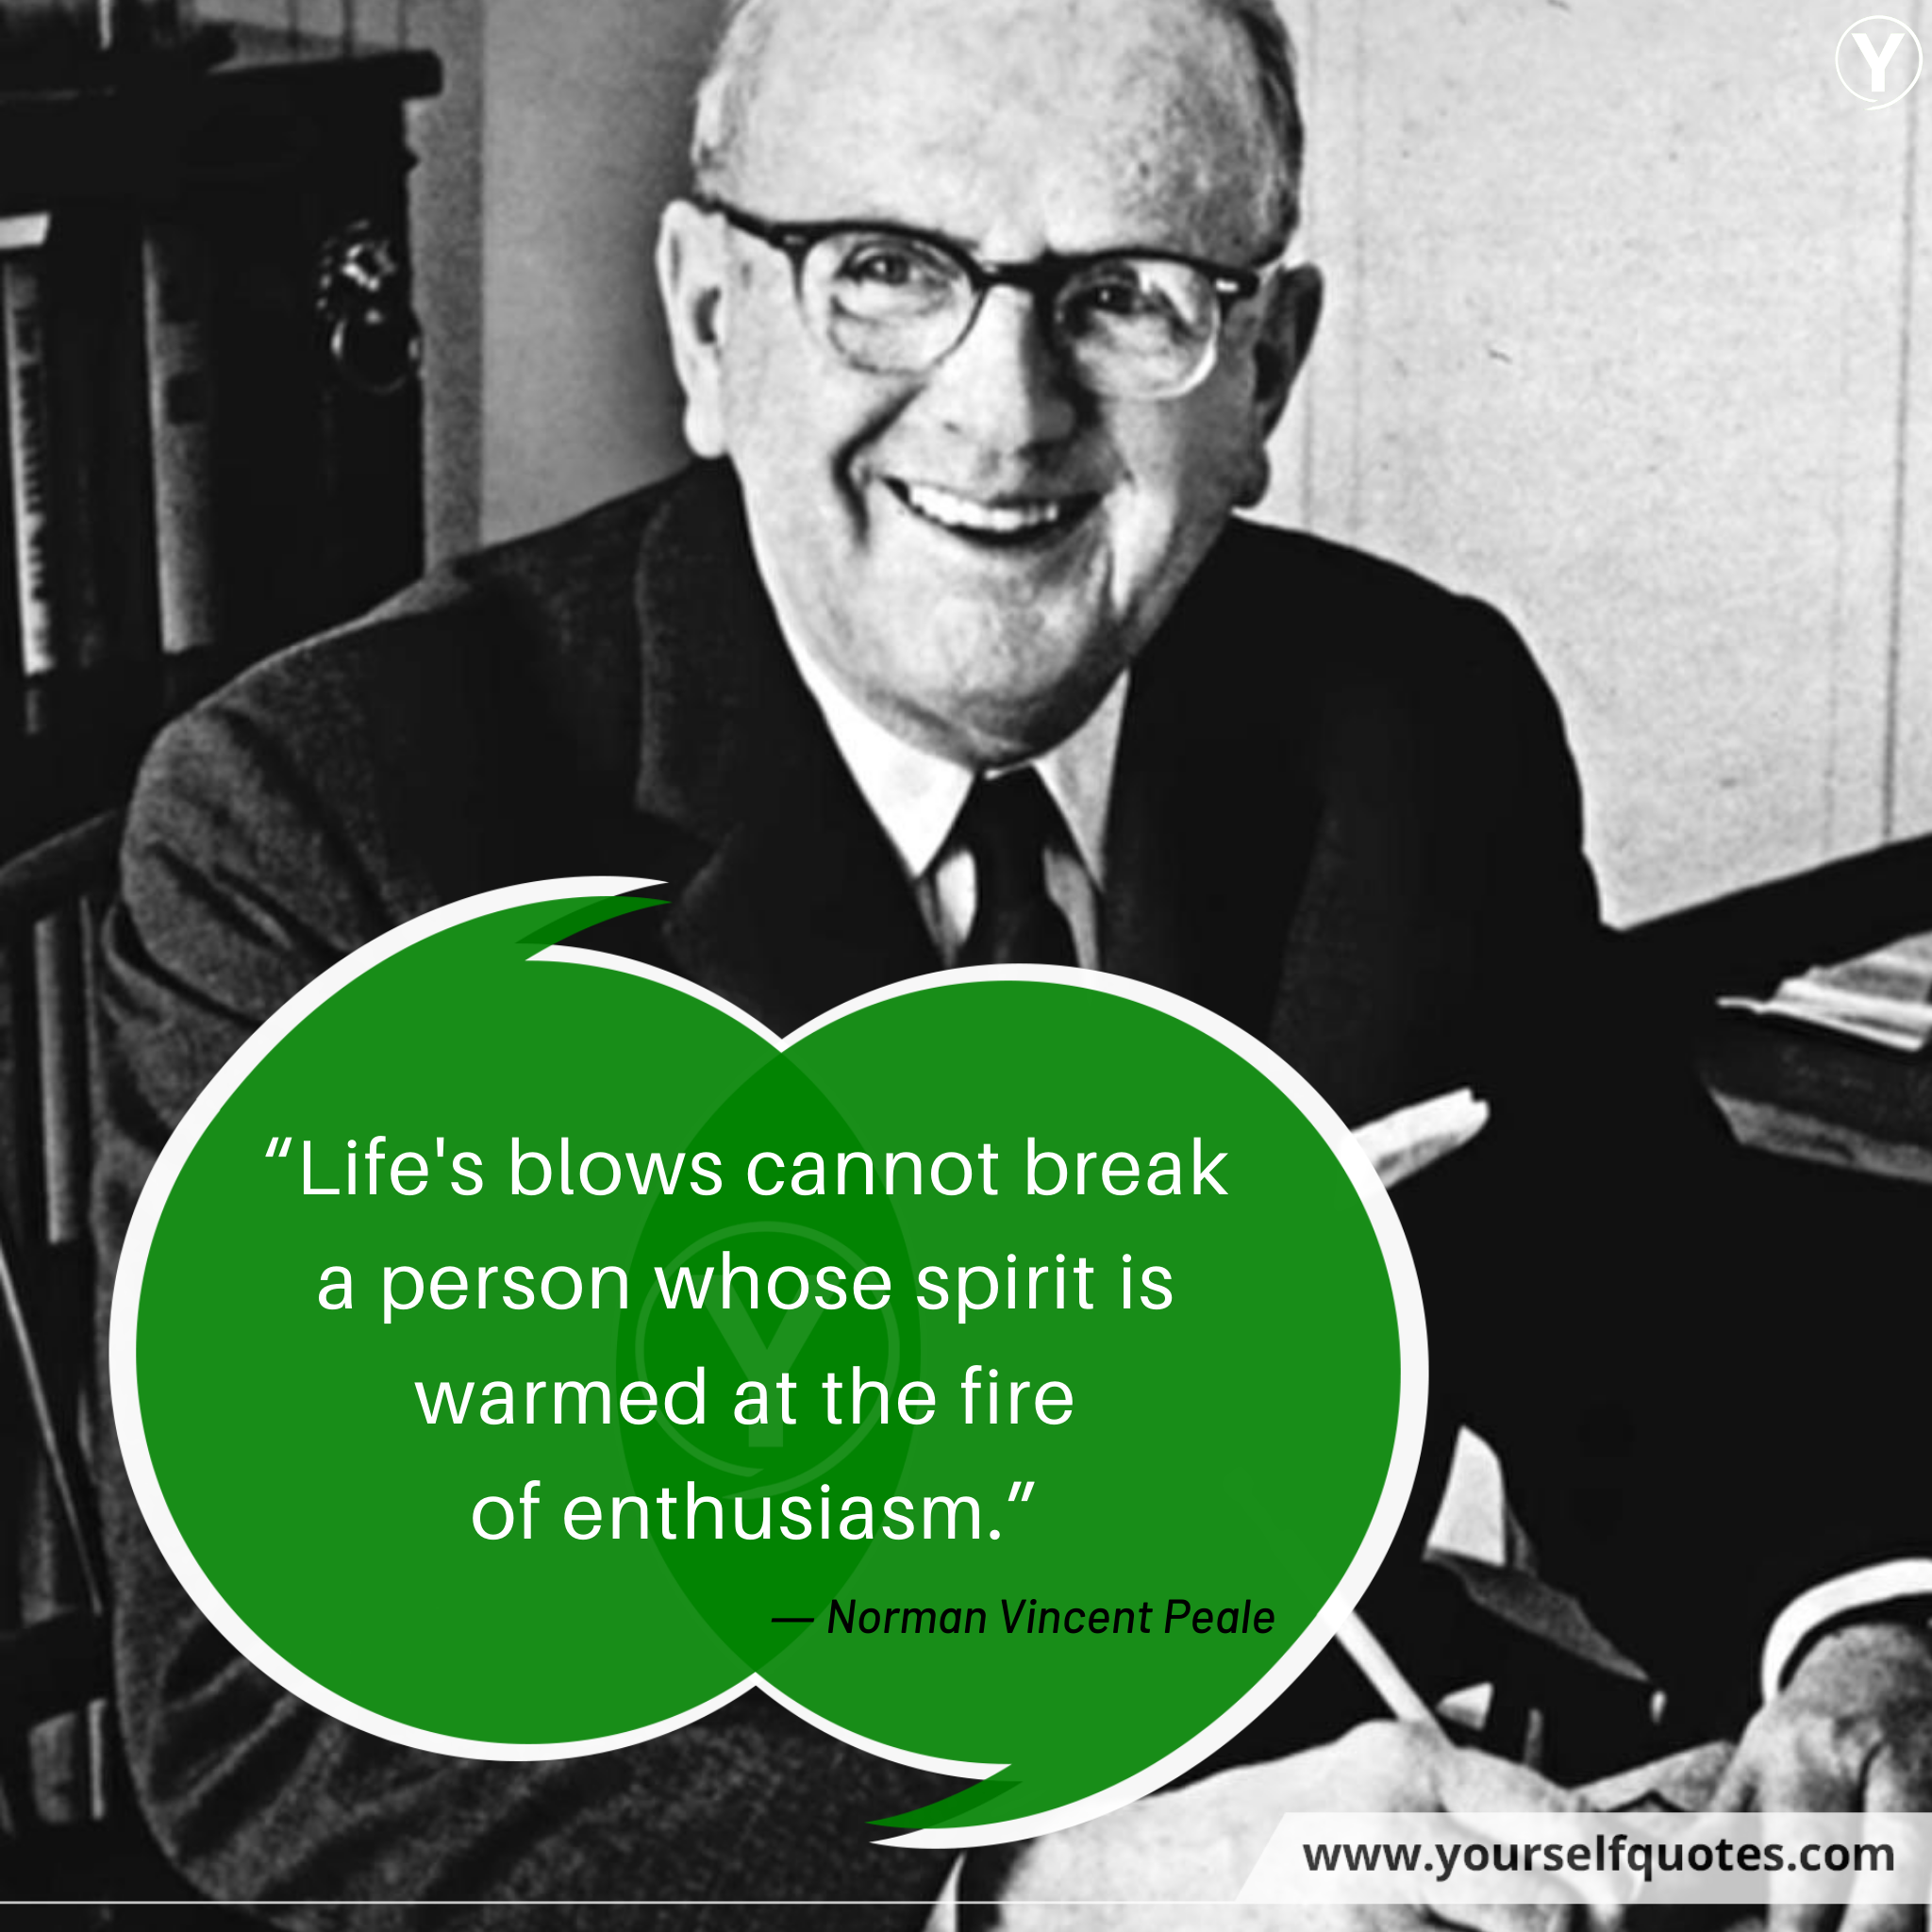 Quotes on Life by Norman Vincent Peale